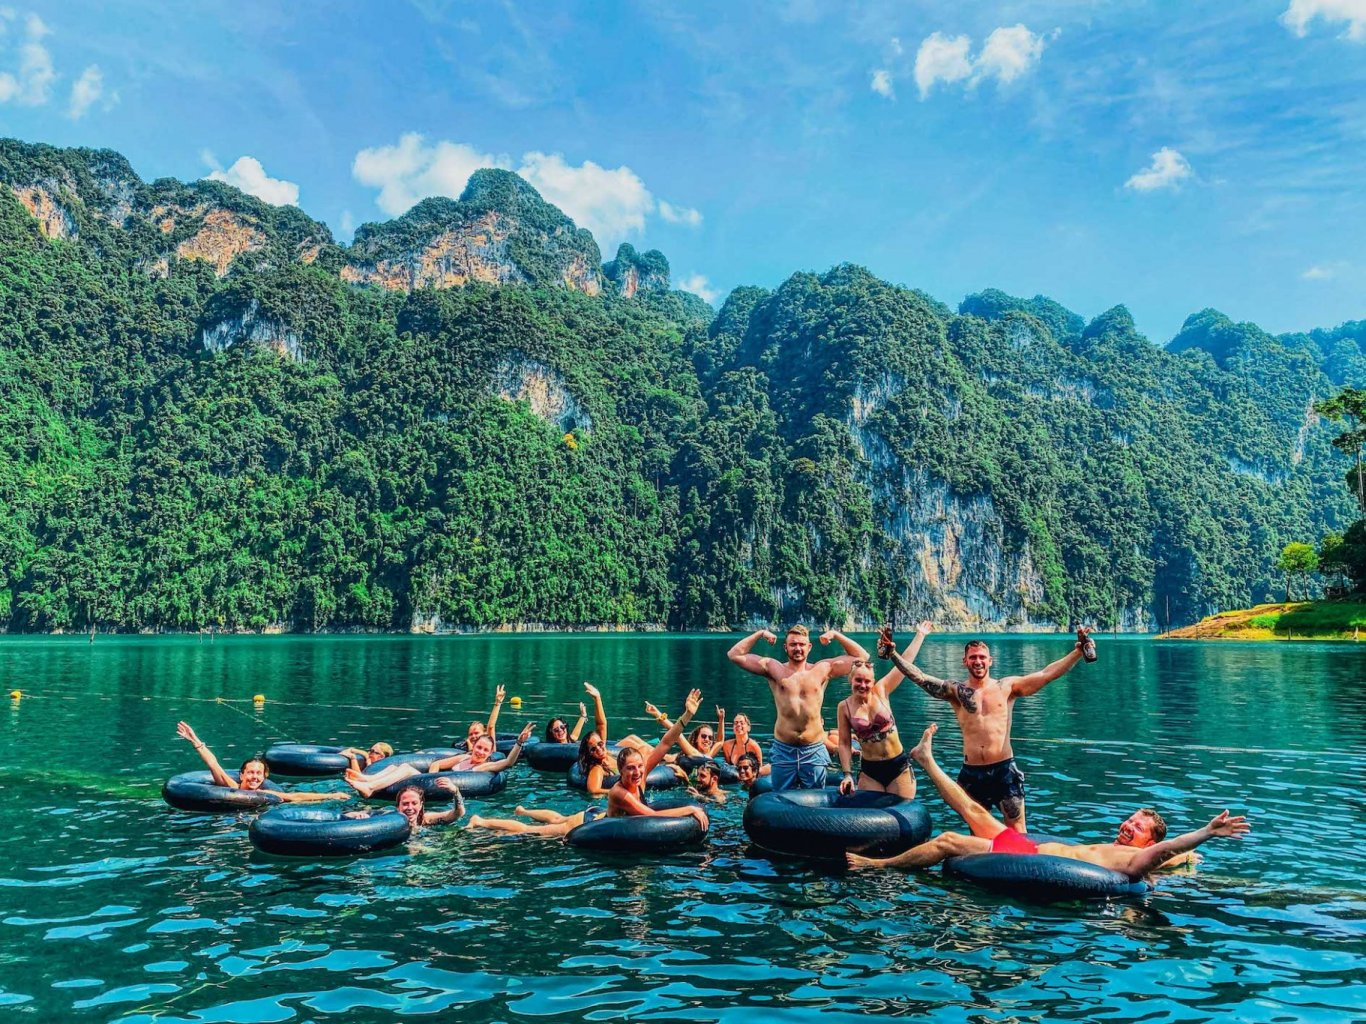 Group photos on the doughnuts in front of beautiful mountains in Khao Sok Thailand